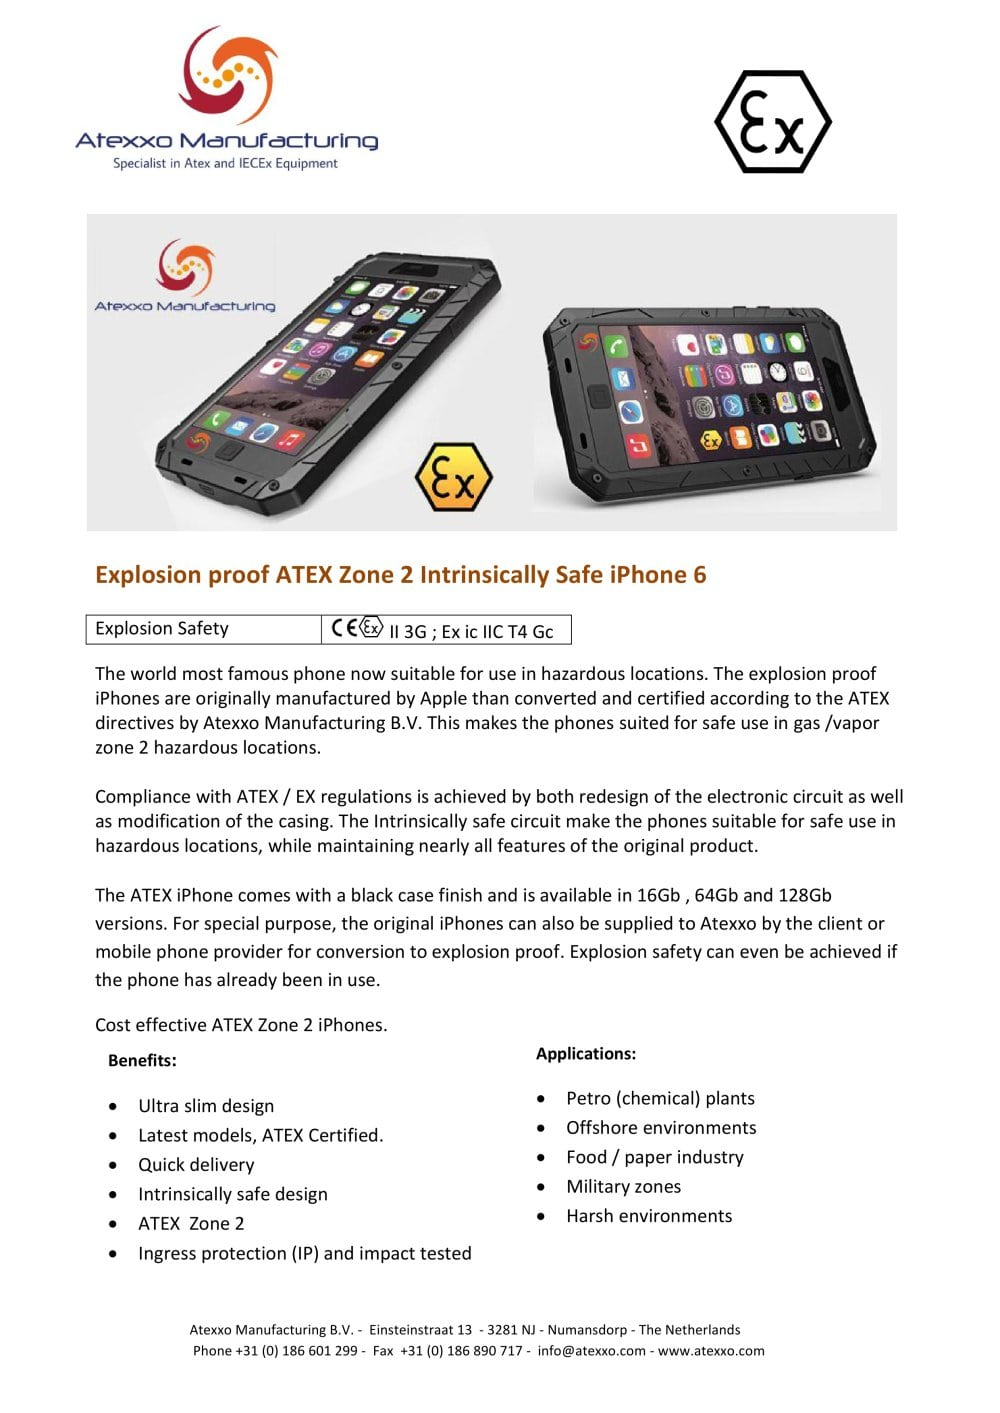 Explosion Proof Atex Zone 2 Intrinsically Safe Iphone 6 Atexxo Wiring 1 Pages